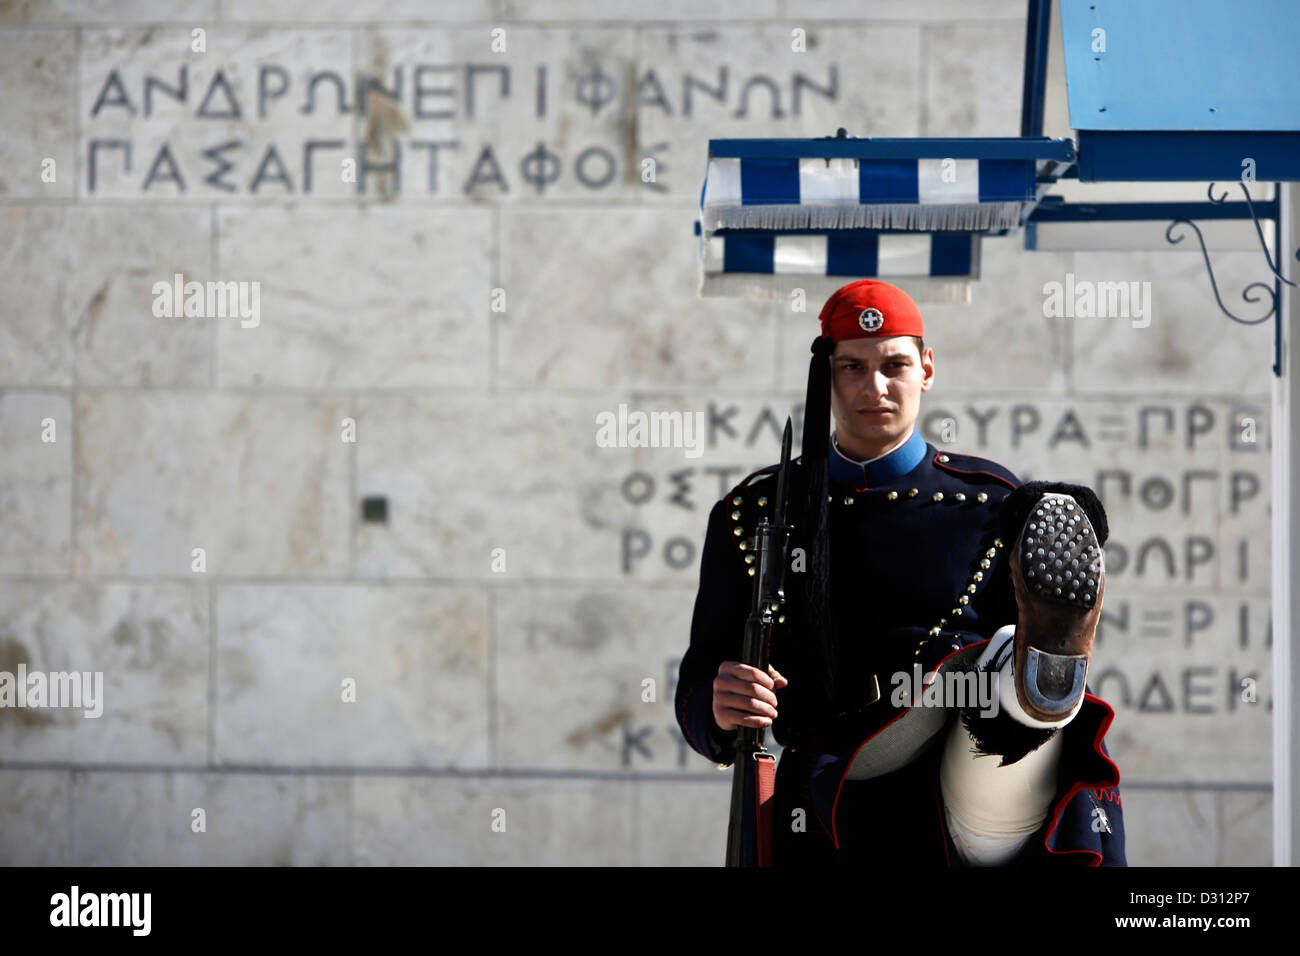 Guard (Evzone) marching in front of the Tomb of the Unknown Soldier, Athens, Greece. - Stock Image